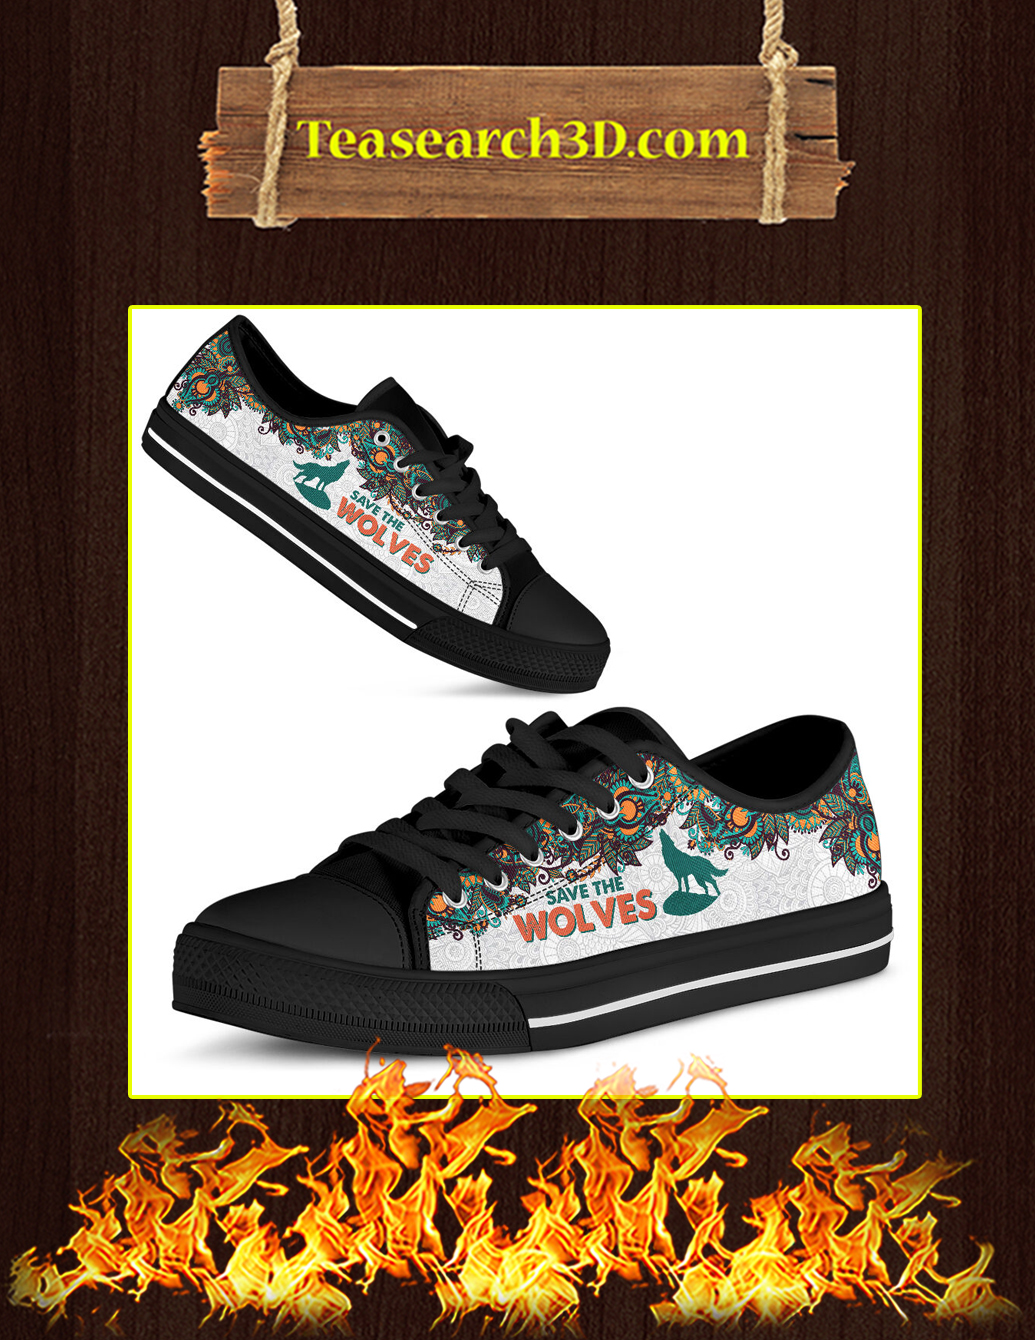 Save The Wolves Low Top black